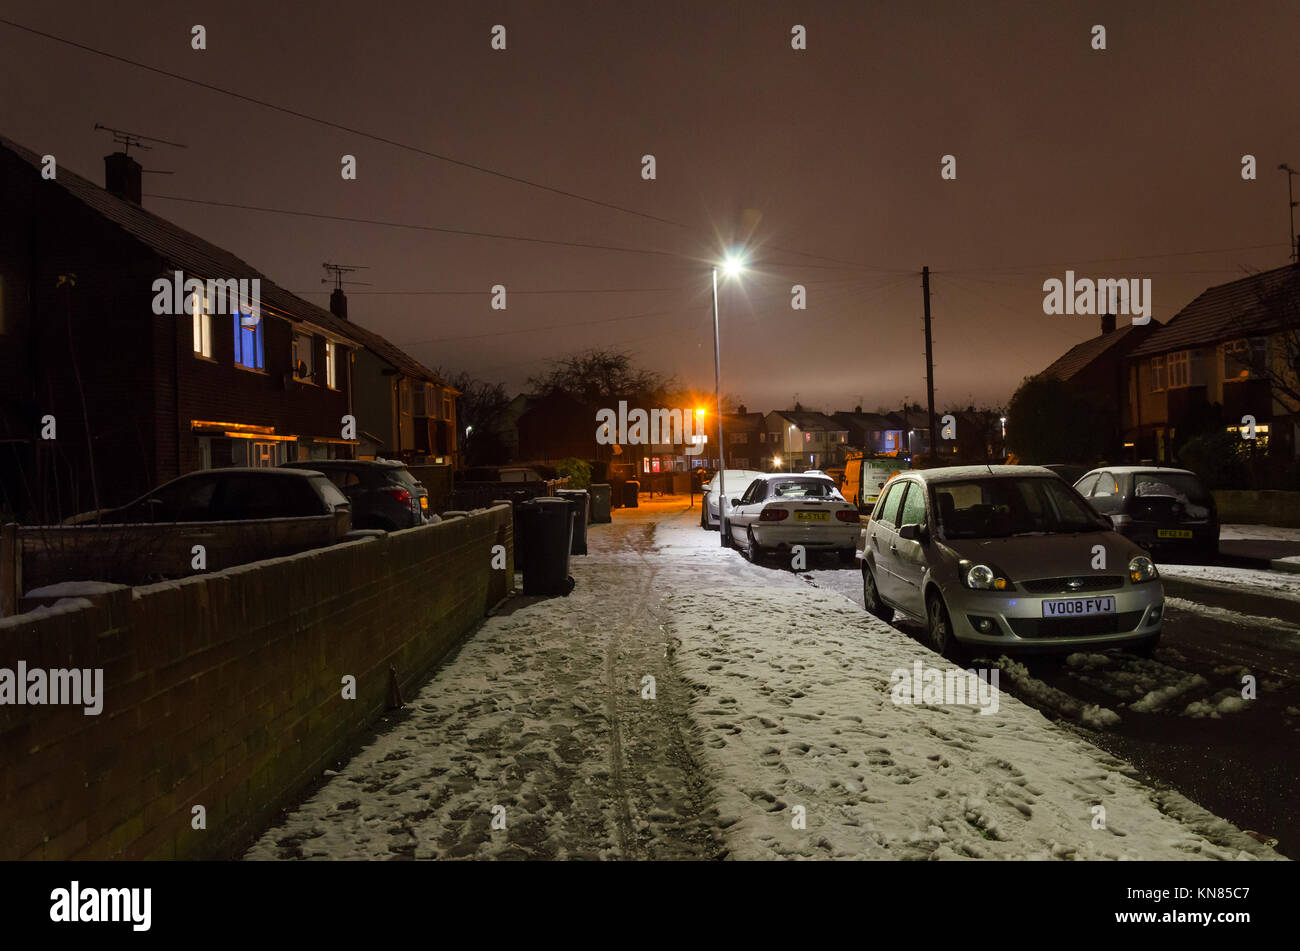 a-suburban-street-seen-at-night-after-a-day-of-snow-which-has-left-KN85C7.jpg